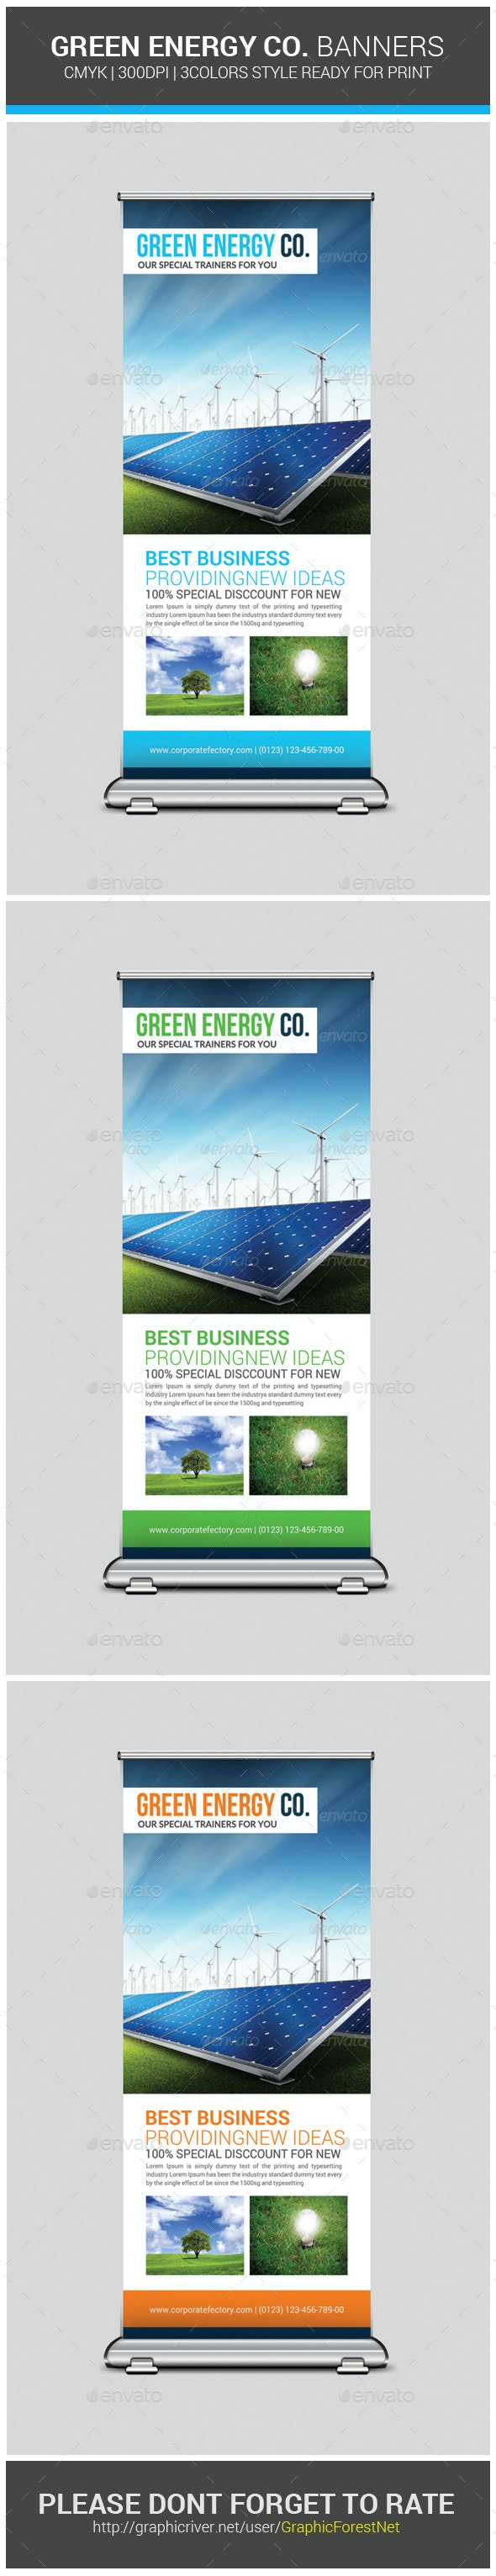 Green Energy Roll Up Banner Template - Signage Print Templates